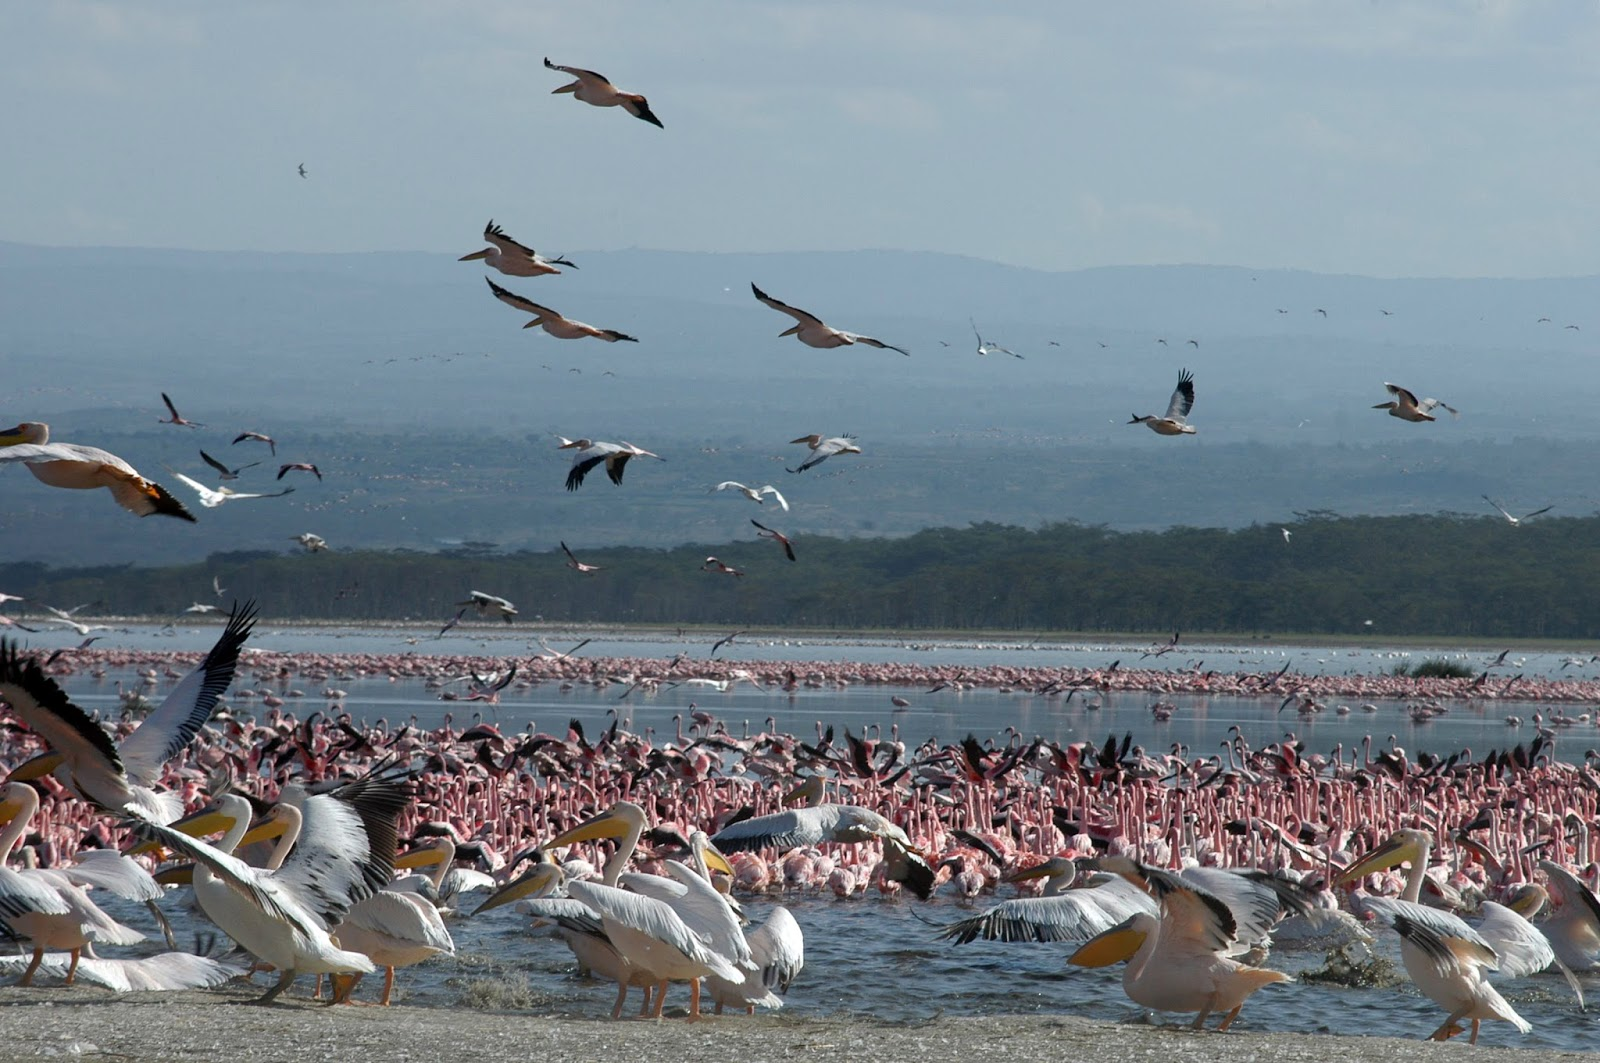 Lake Nakuru The Great Rift Valley, Kenya